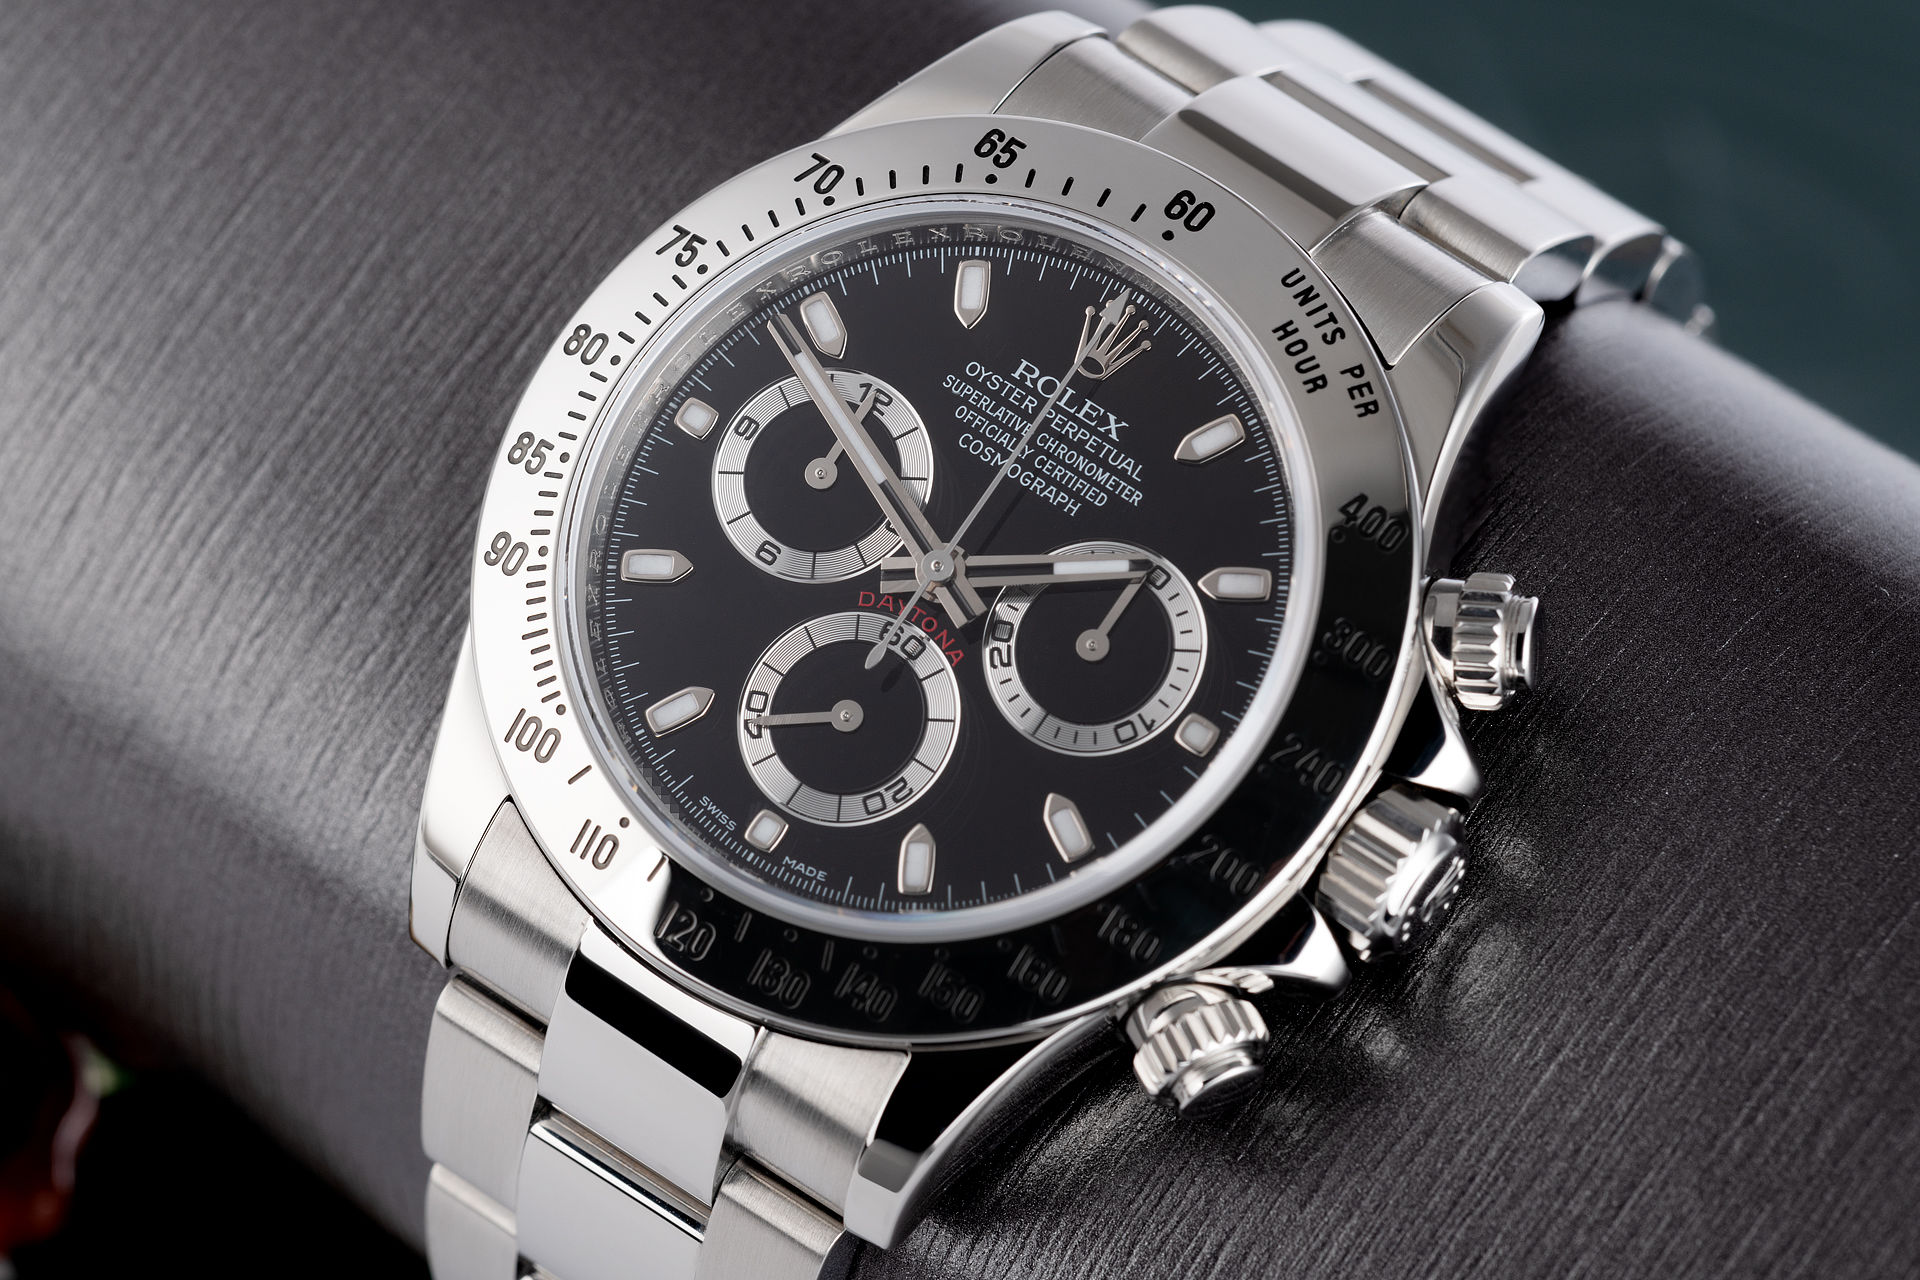 Early Chromalight Dial | ref 116520 | Rolex Cosmograph Daytona